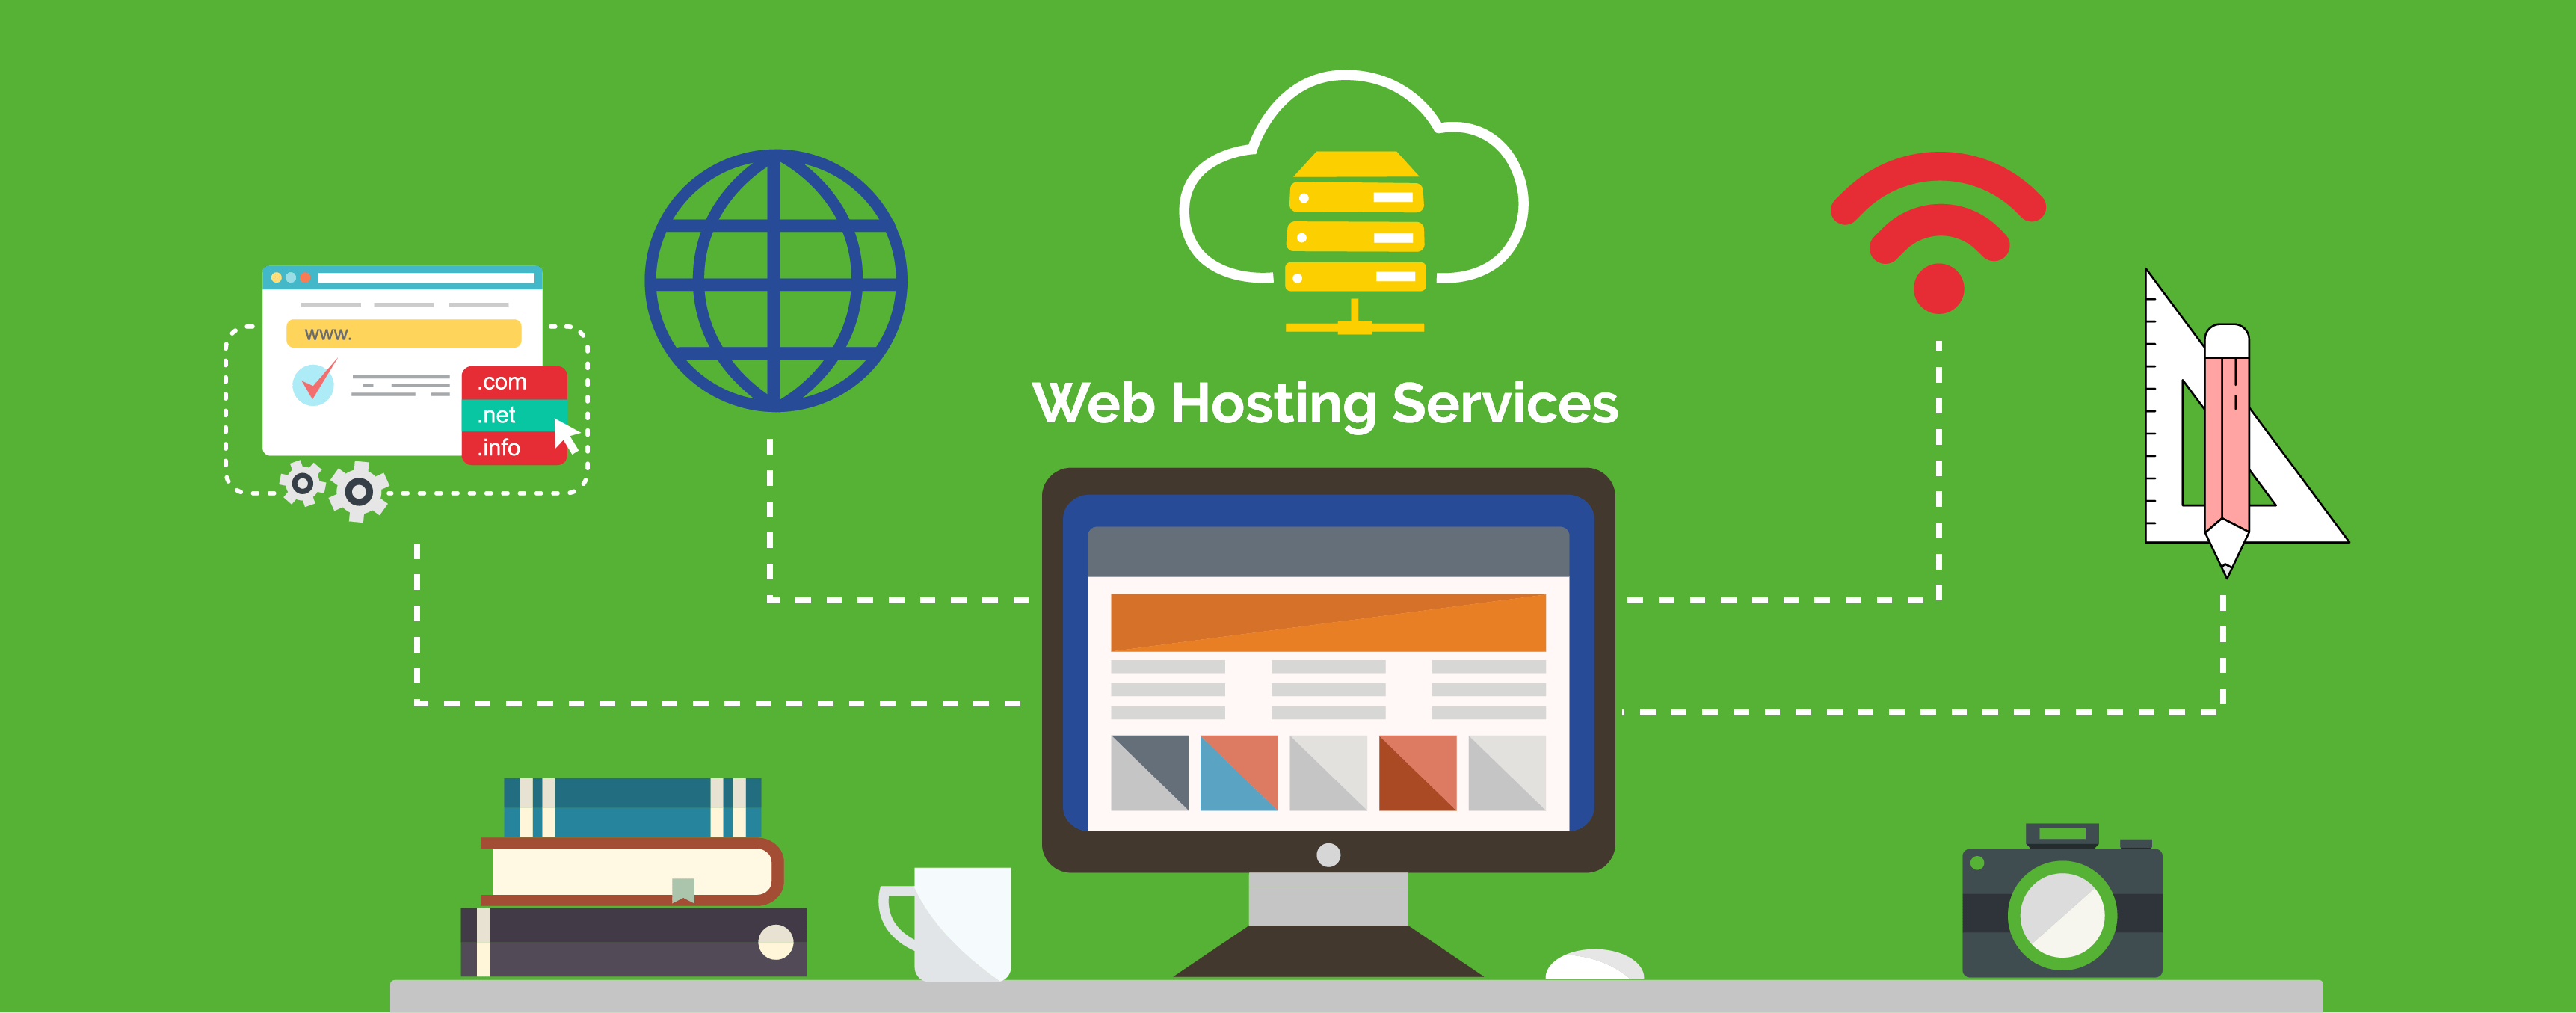 Top Web Hosting Company Services in Bangalore | Top Web